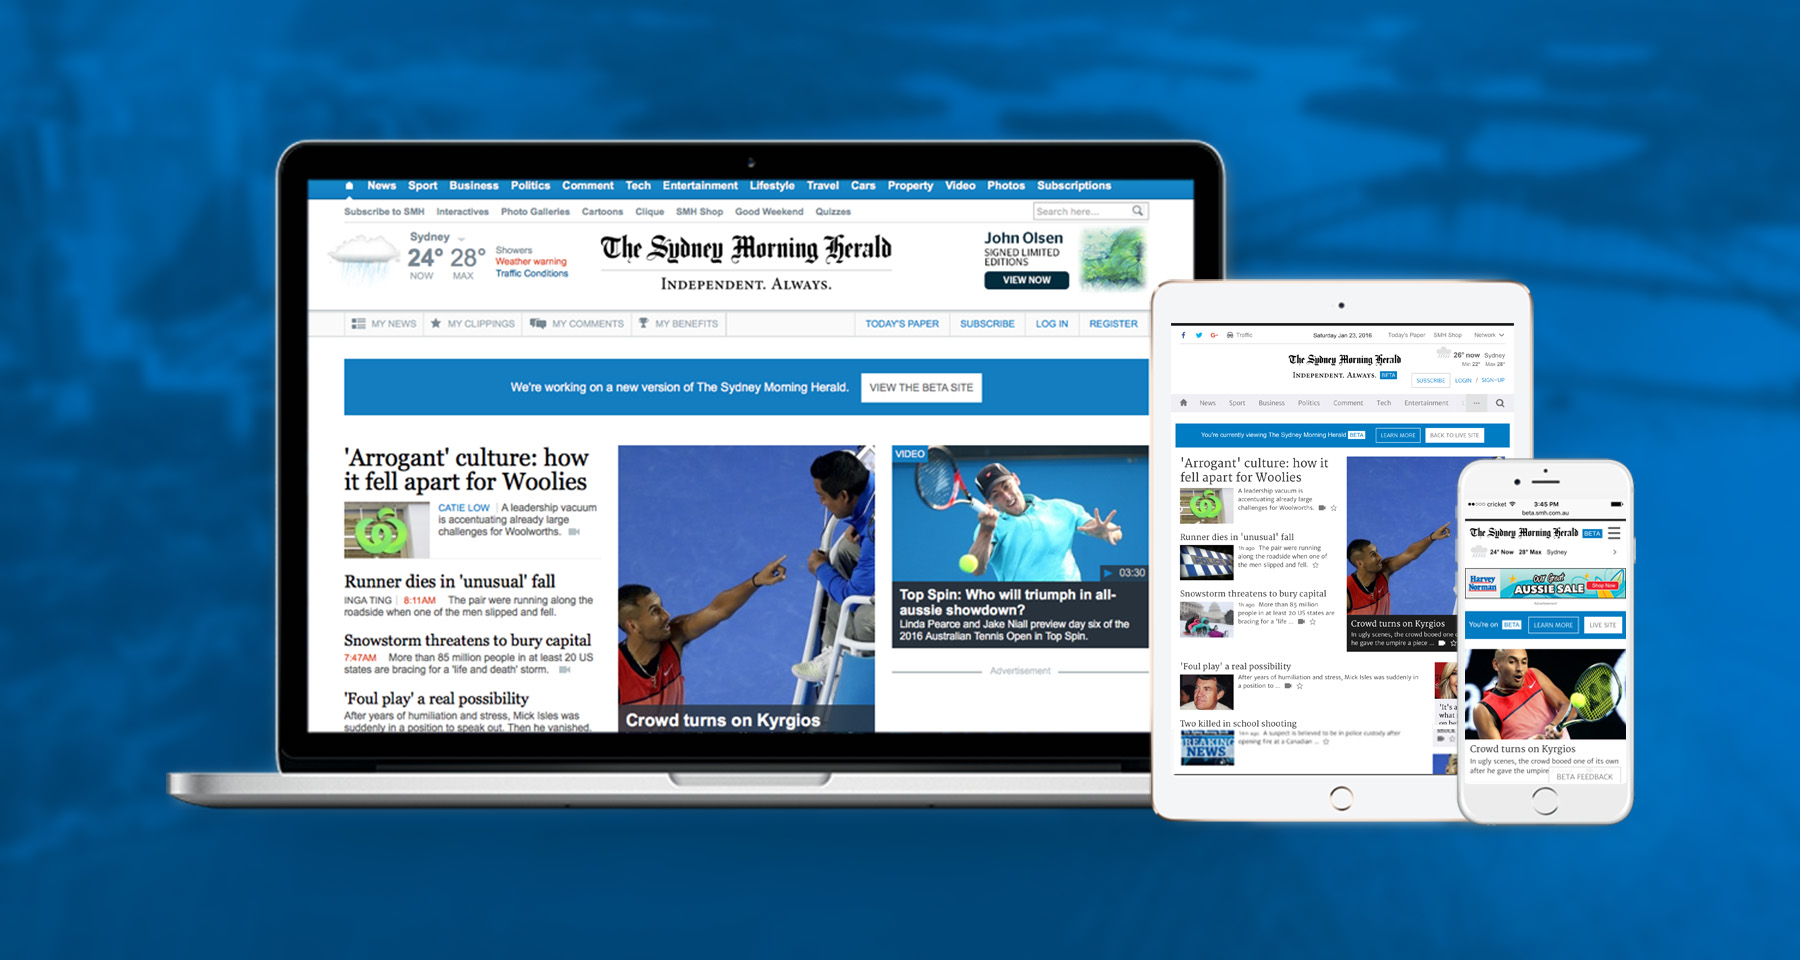 Fairfax Media designs to please 7 million readers with adaptive experience